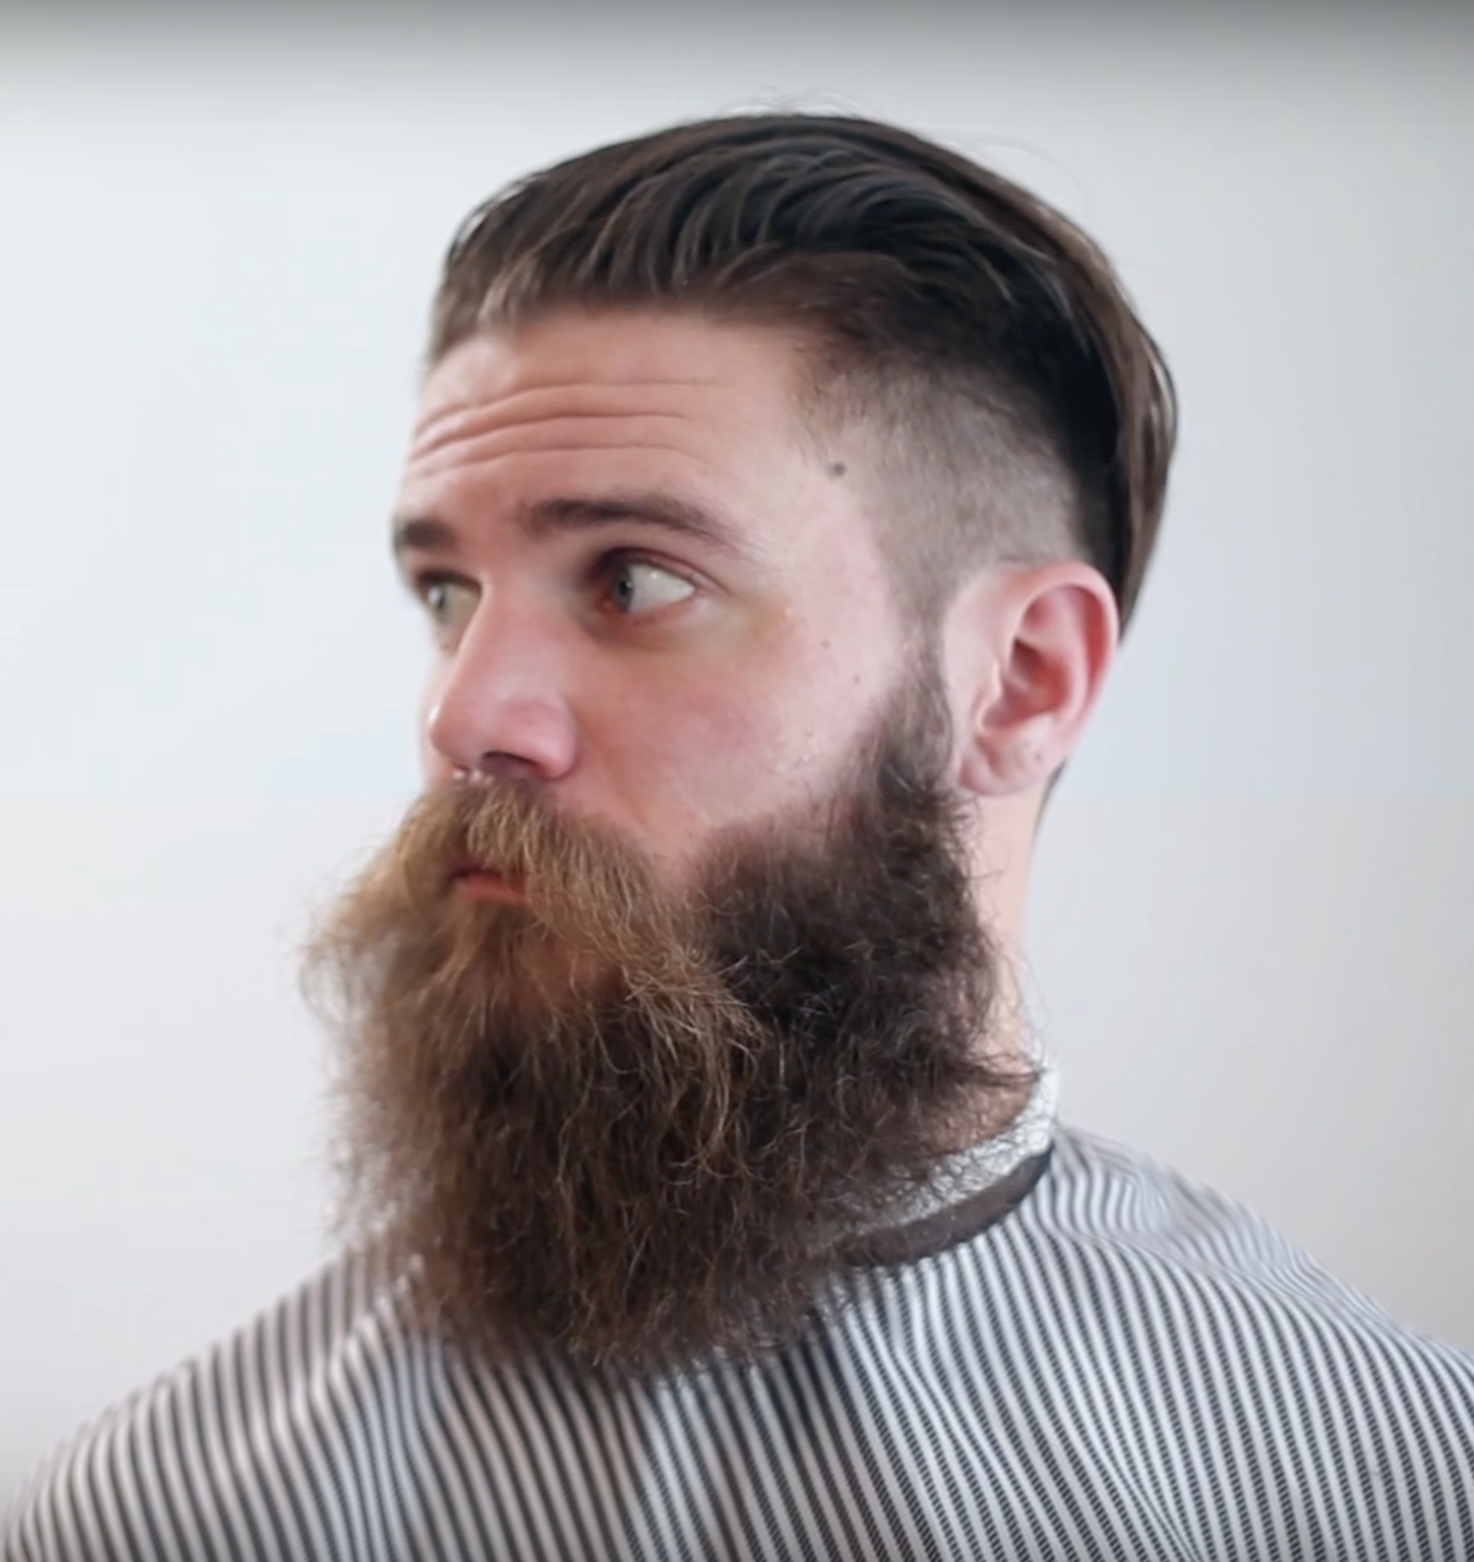 How-To: Undercut Fade in 7 Steps